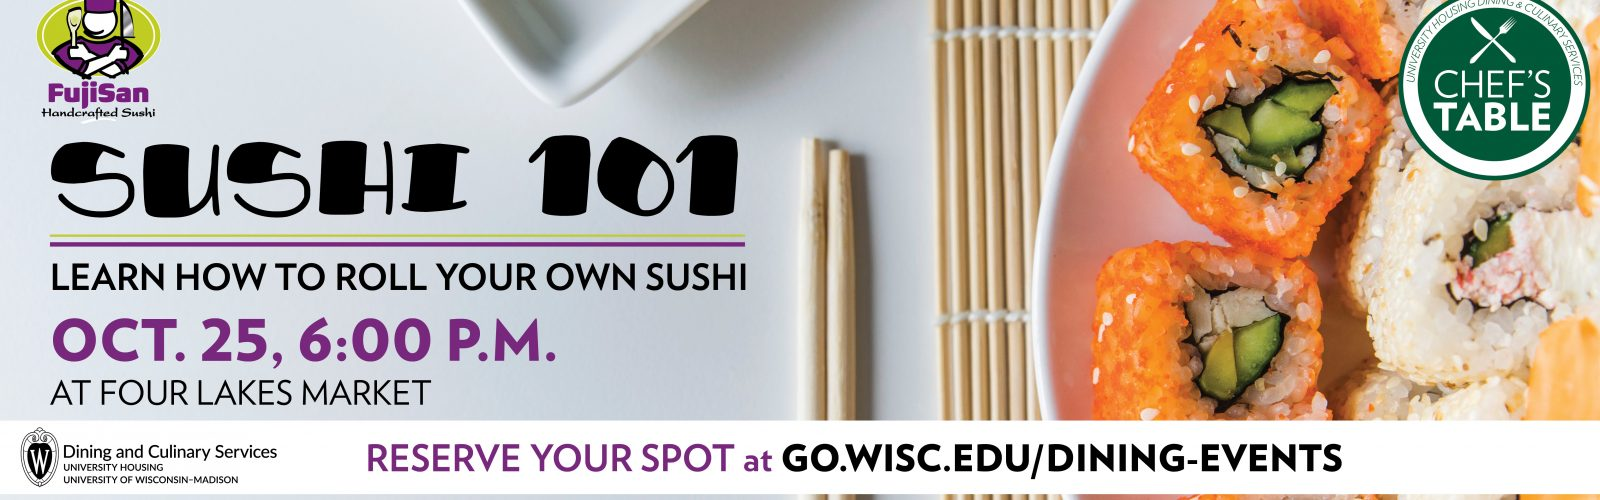 Chef's Table Event: Sushi 101, Oct. 25, 6:00 pm, Four Lakes Market, $12.95 per person